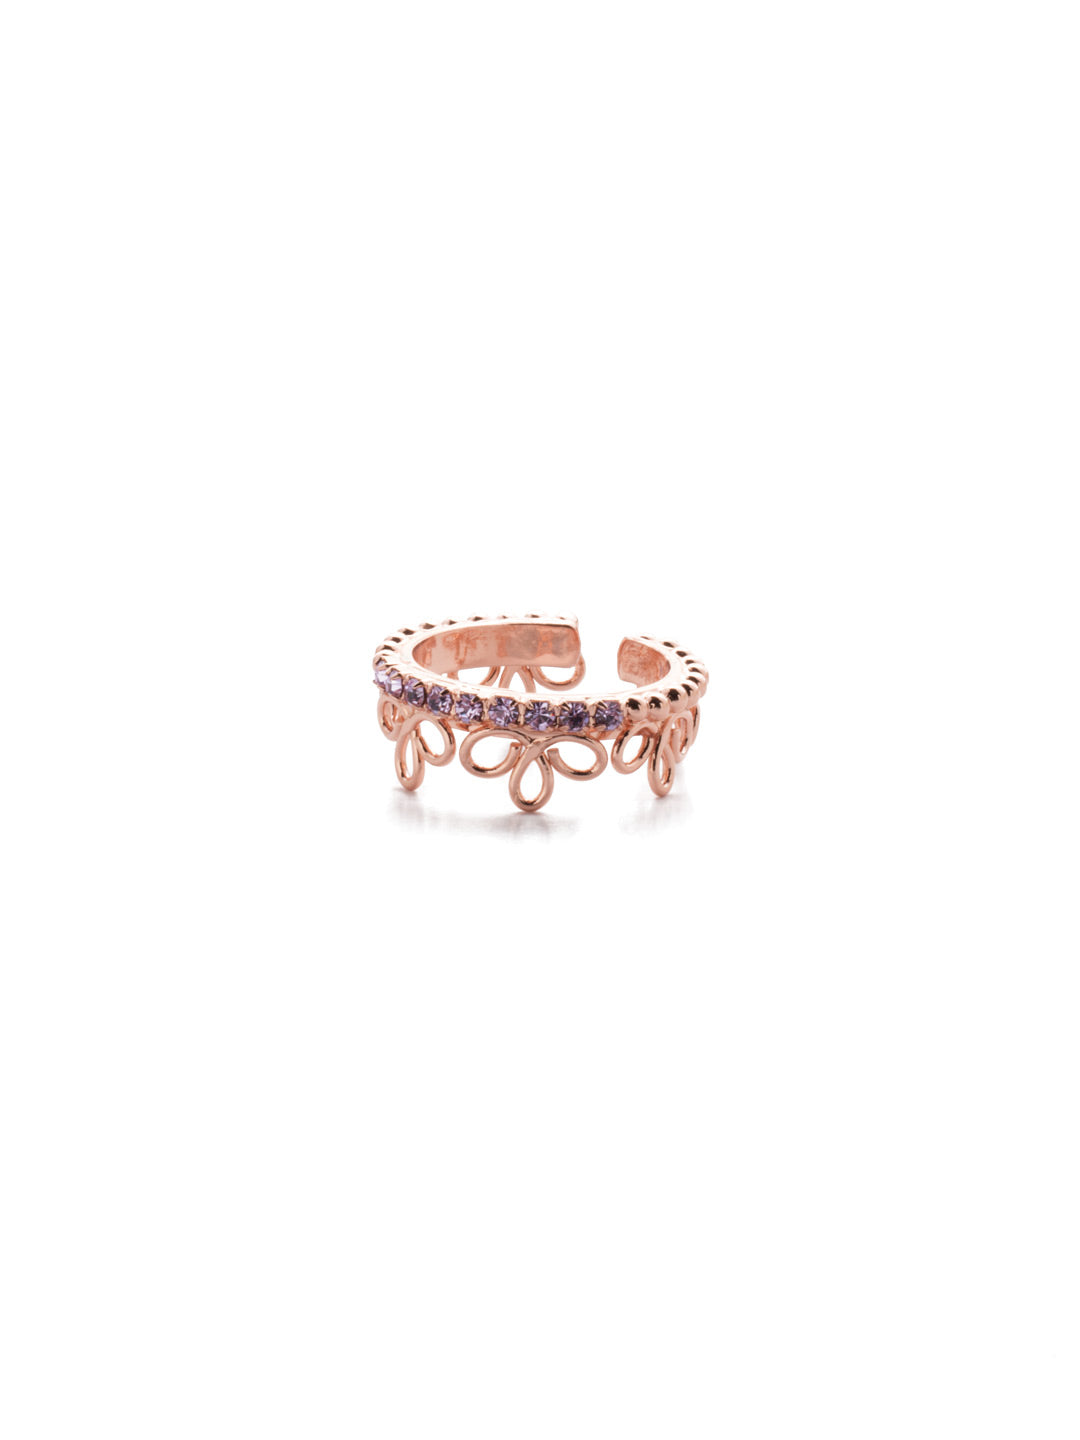 Prunella Band Ring - RES13RGLVP